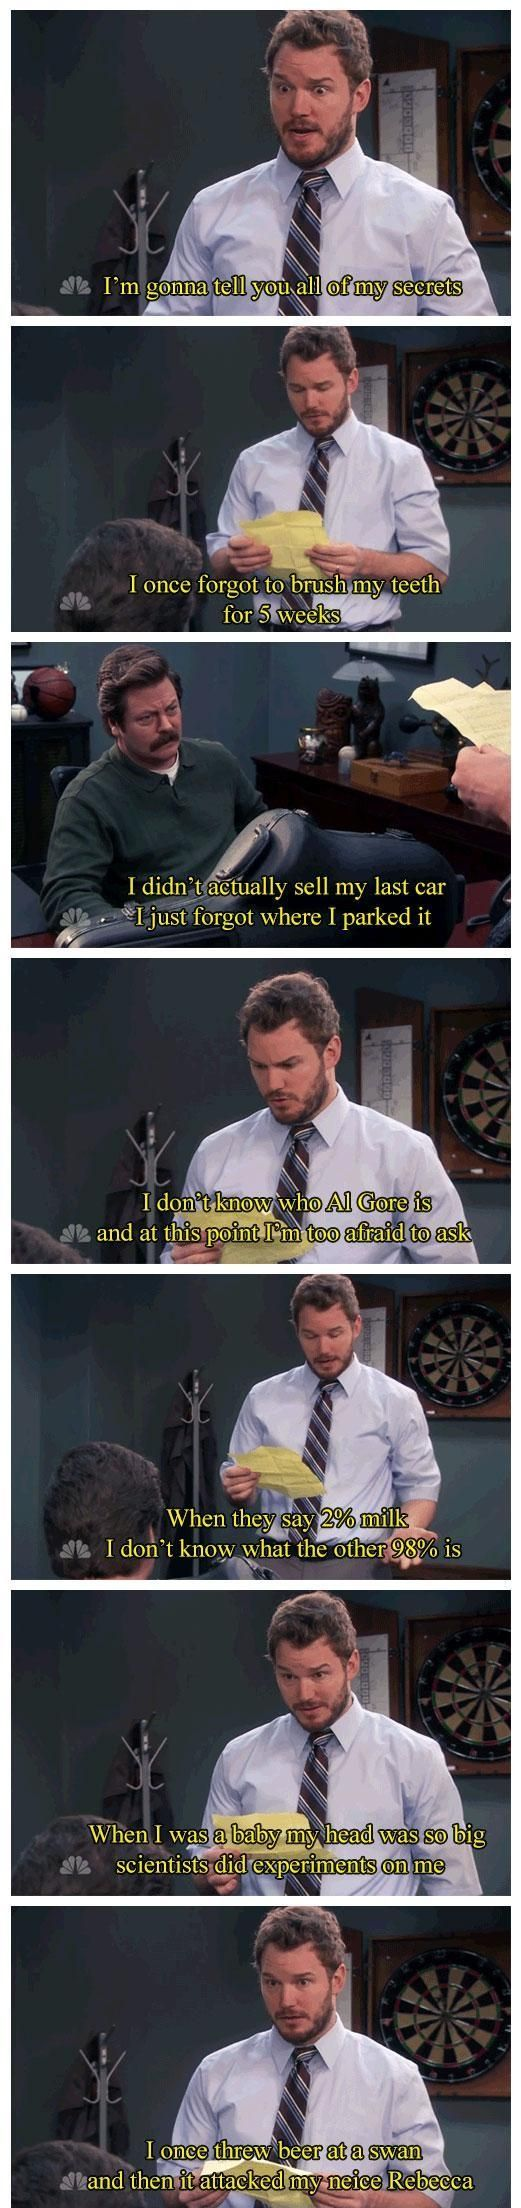 andy parks and recreation - photo #34